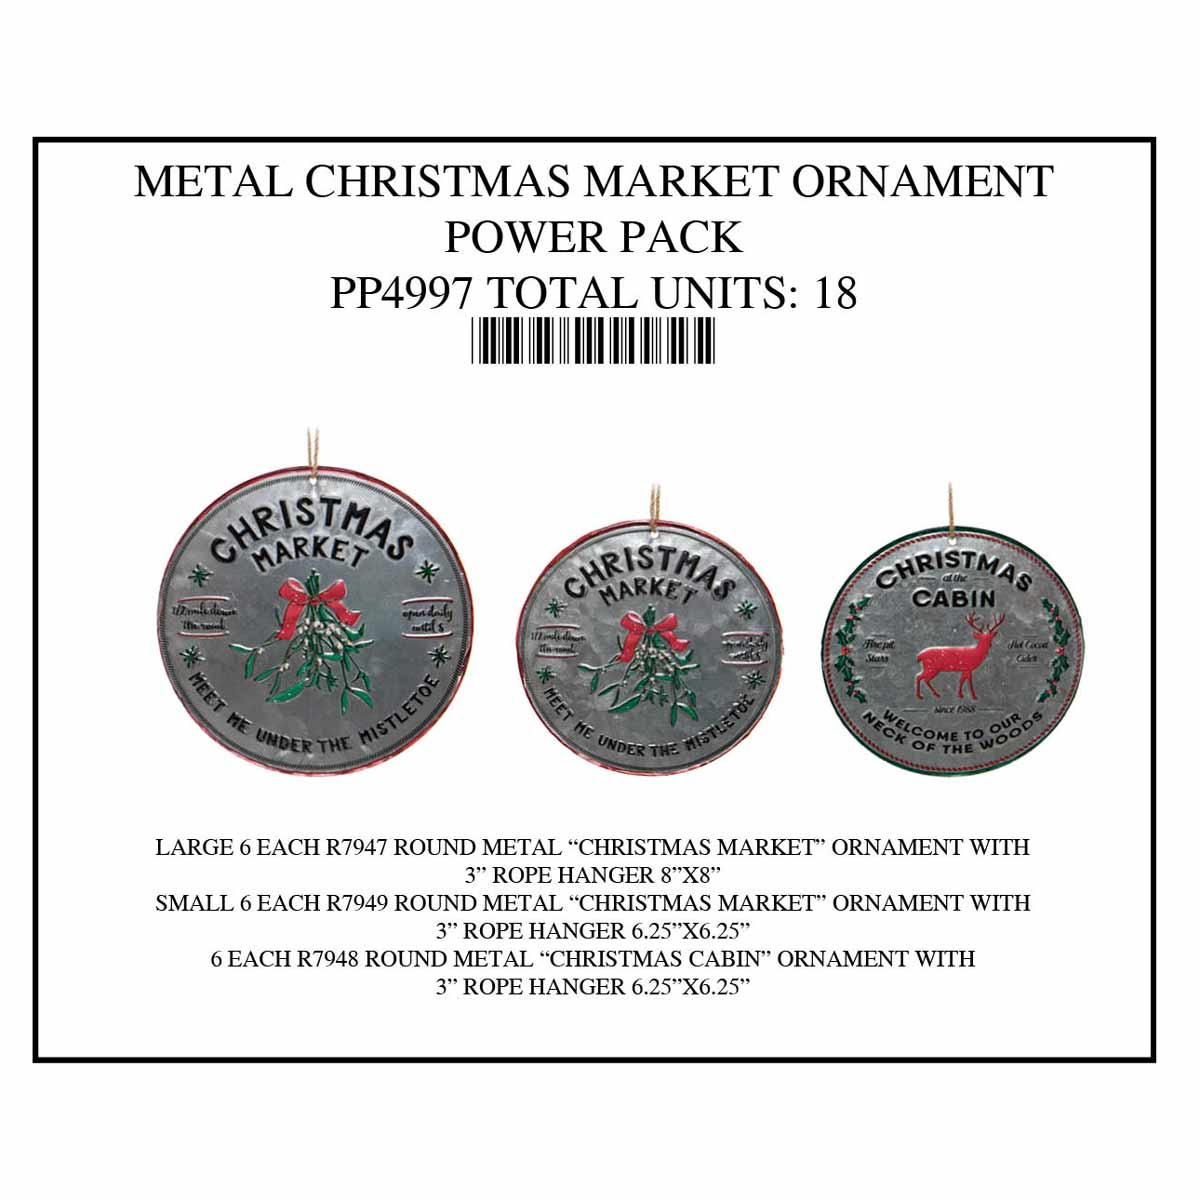 CHRISTMAS MARKET ORNAMENT POWER PACK 18 UNITS